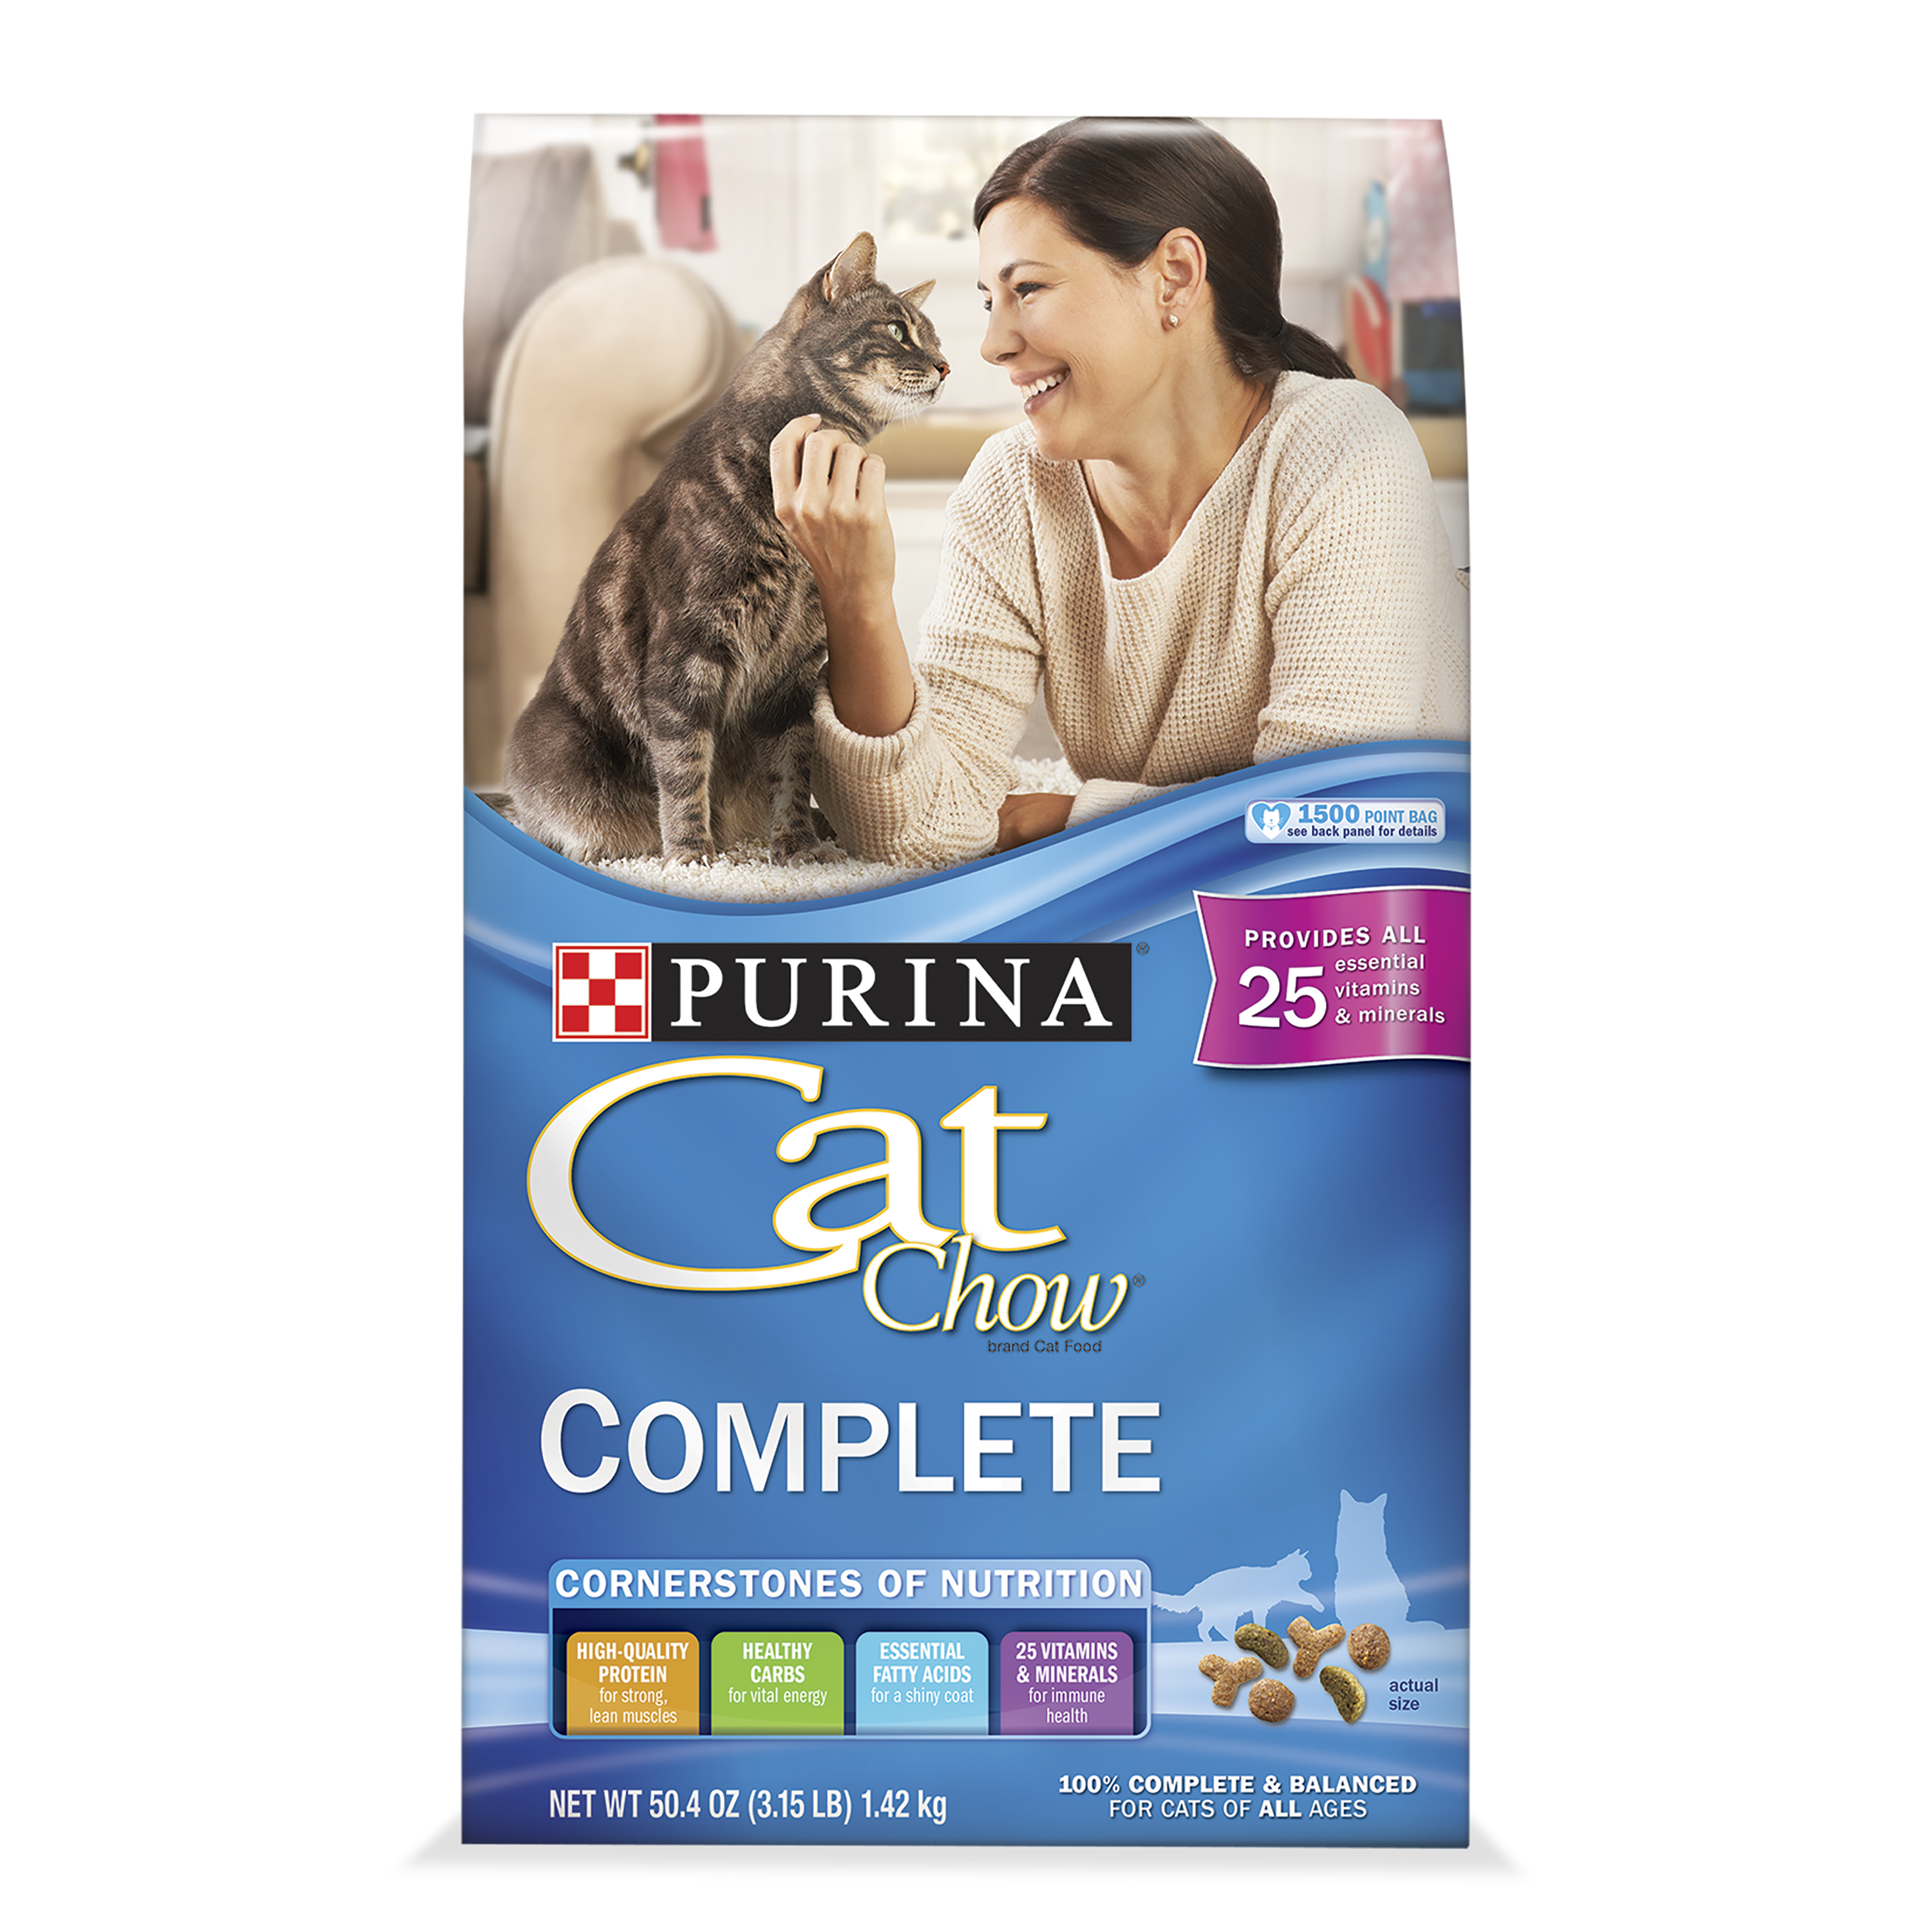 Cat Chow Complete Dry Cat Food, 3.15 lb